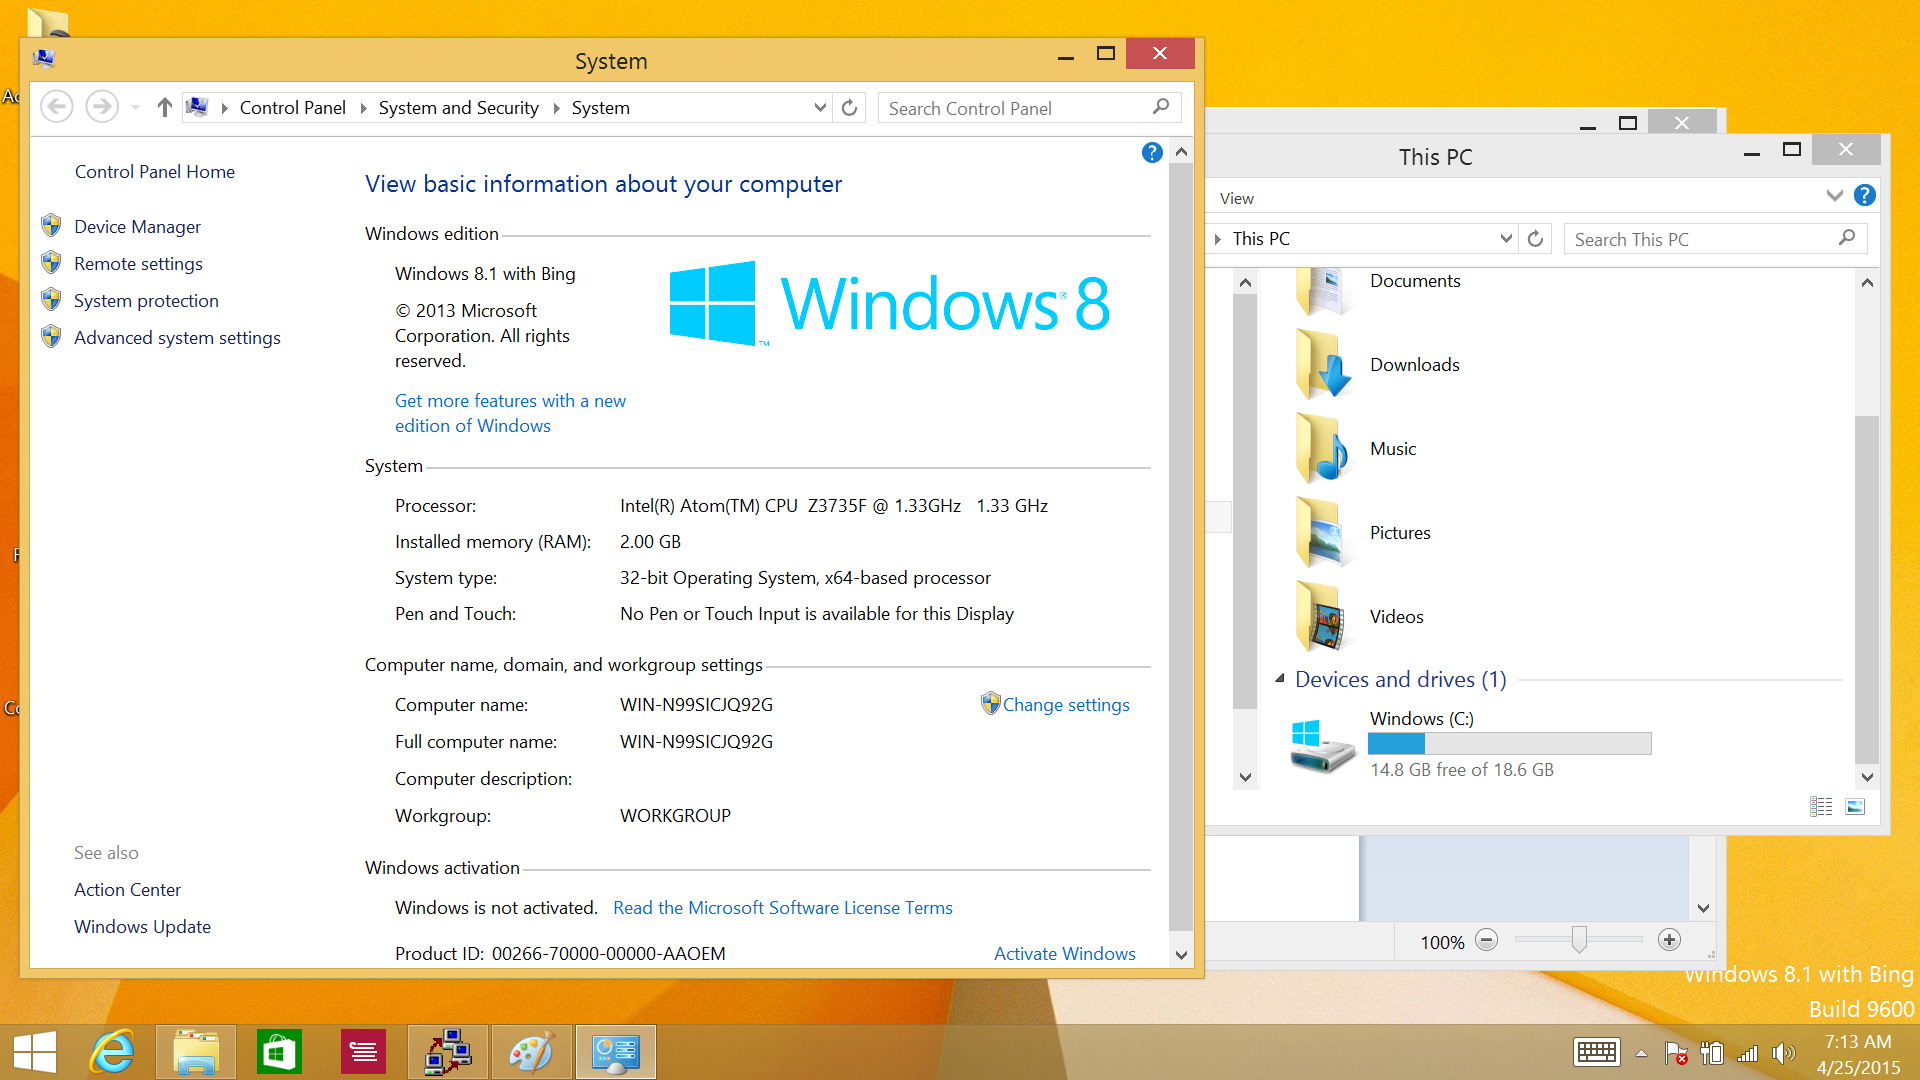 Where Can I Download Windows 8 or 8.1